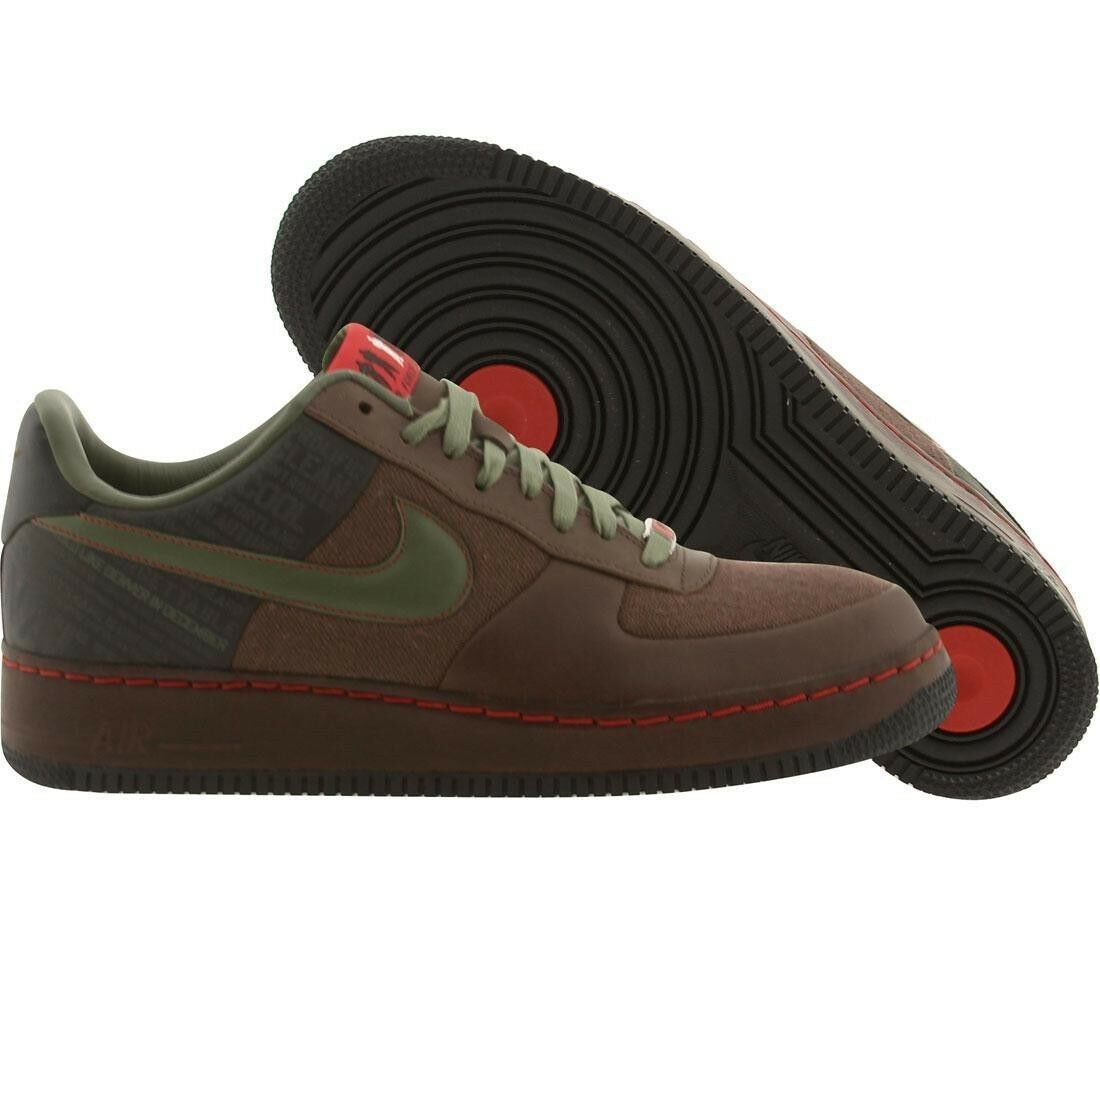 315339-211 Nike Air Force 1 Low PRM Original Six - Calvin Natt Baroque Brown Seasonal clearance sale